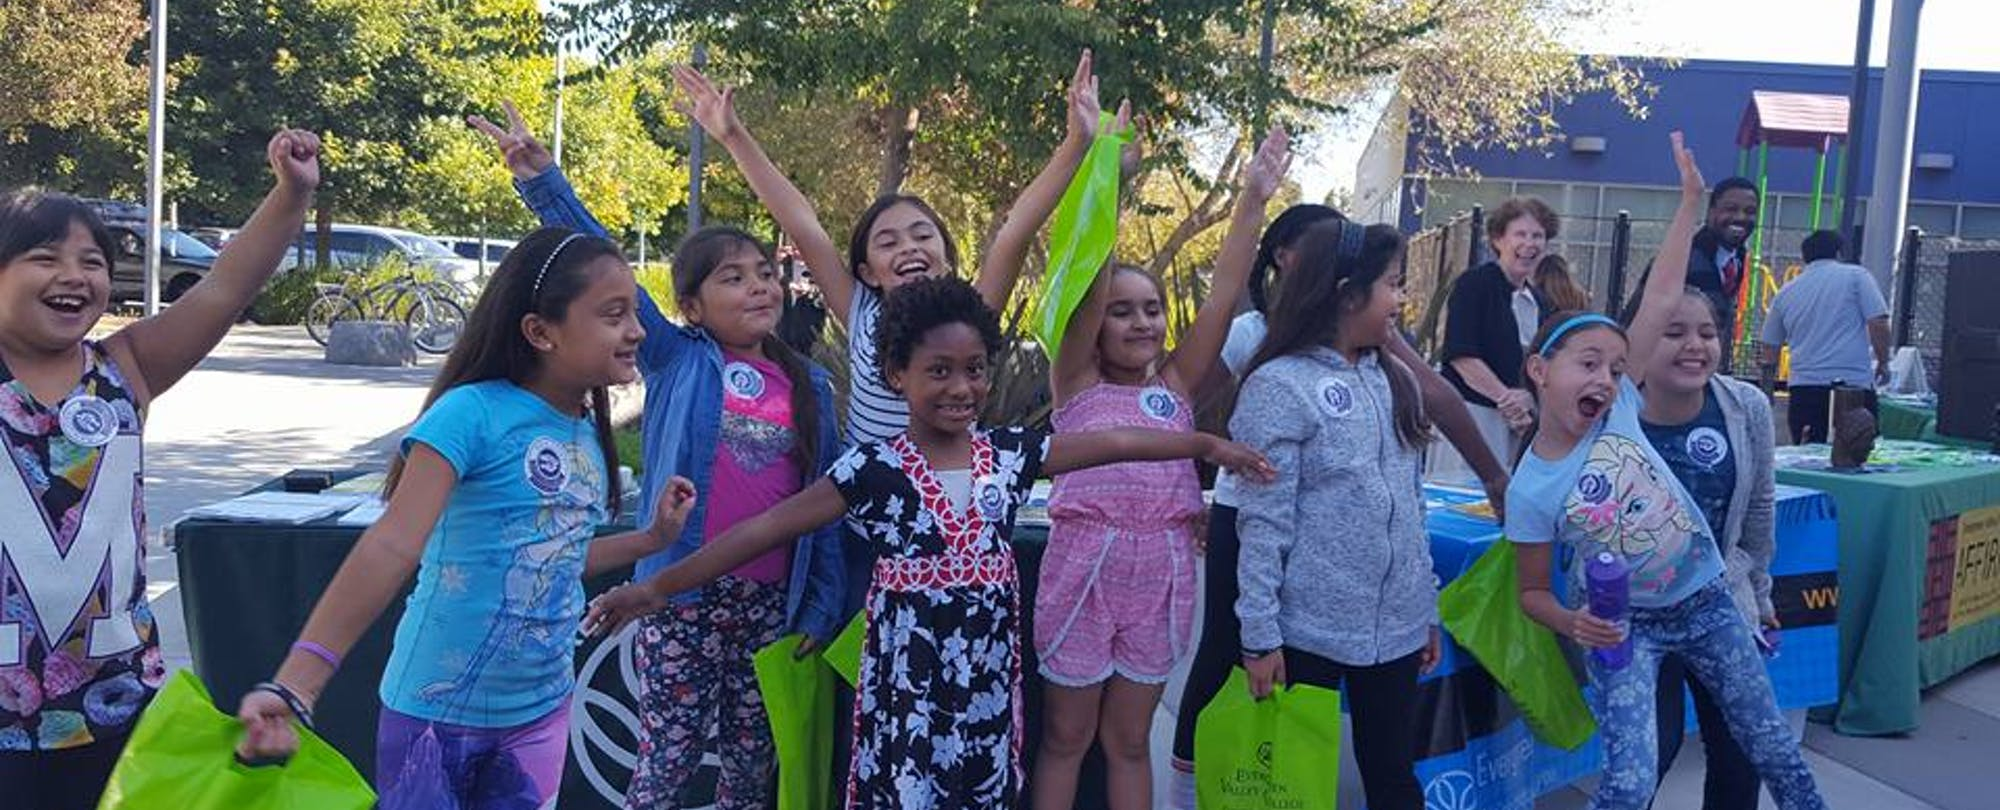 queenhype after school program empowers girls through art and